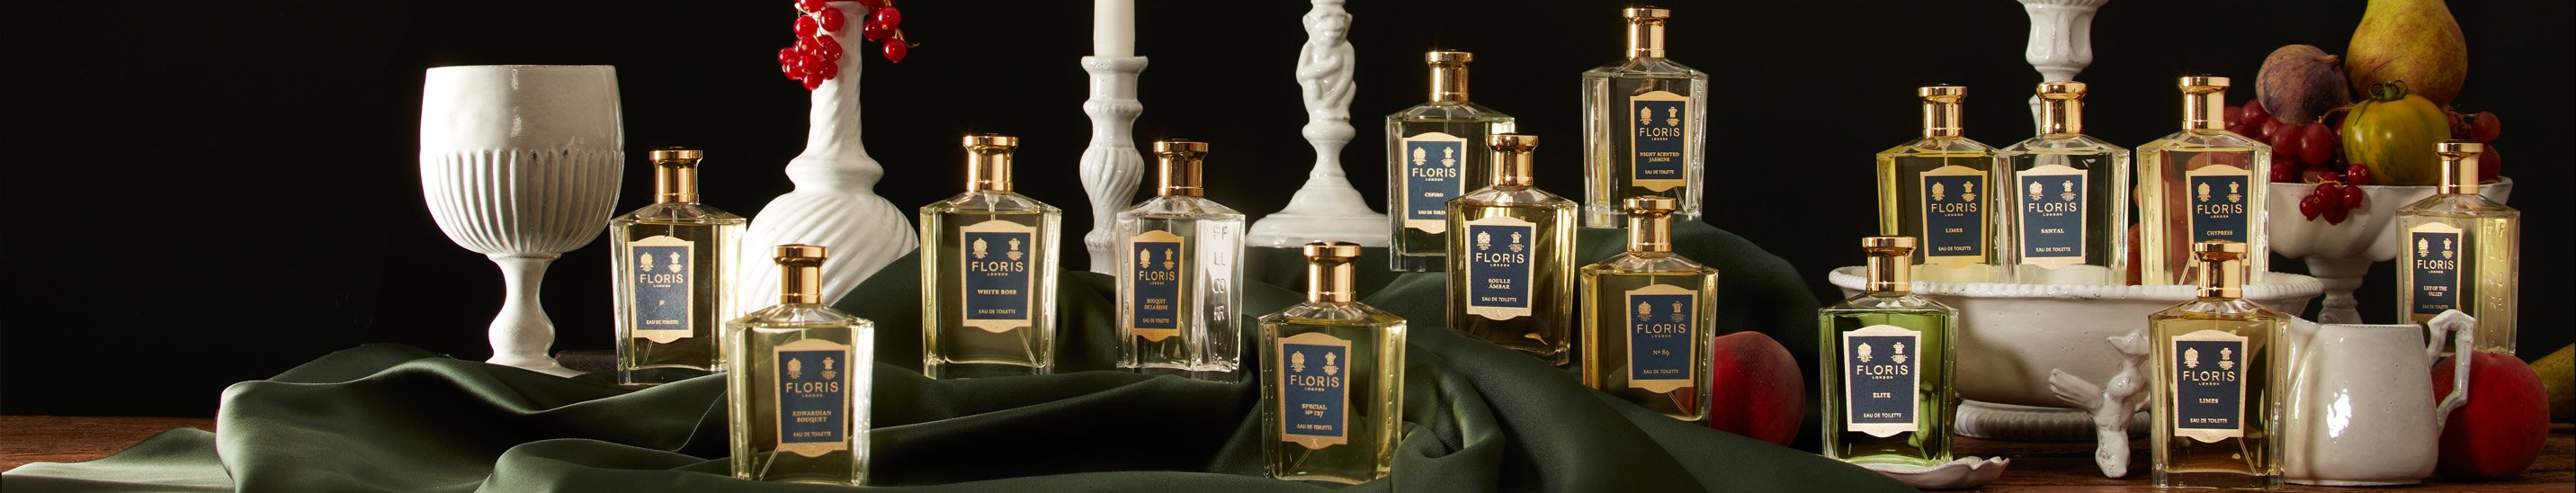 Floris-London-Christmas-Gifting-Collection-Mobile.jpg